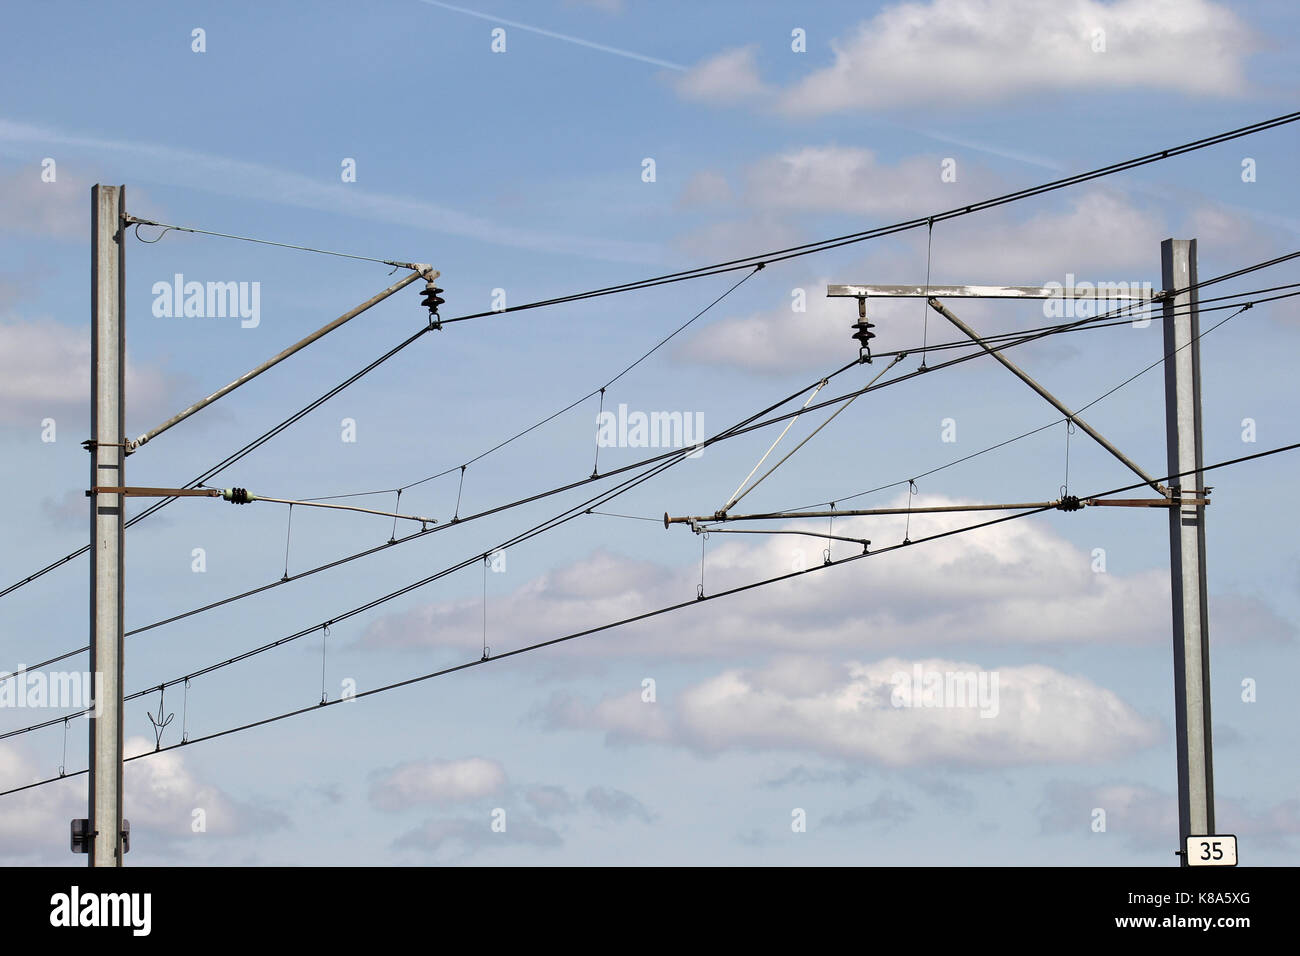 catenary at railway embankment Stock Photo